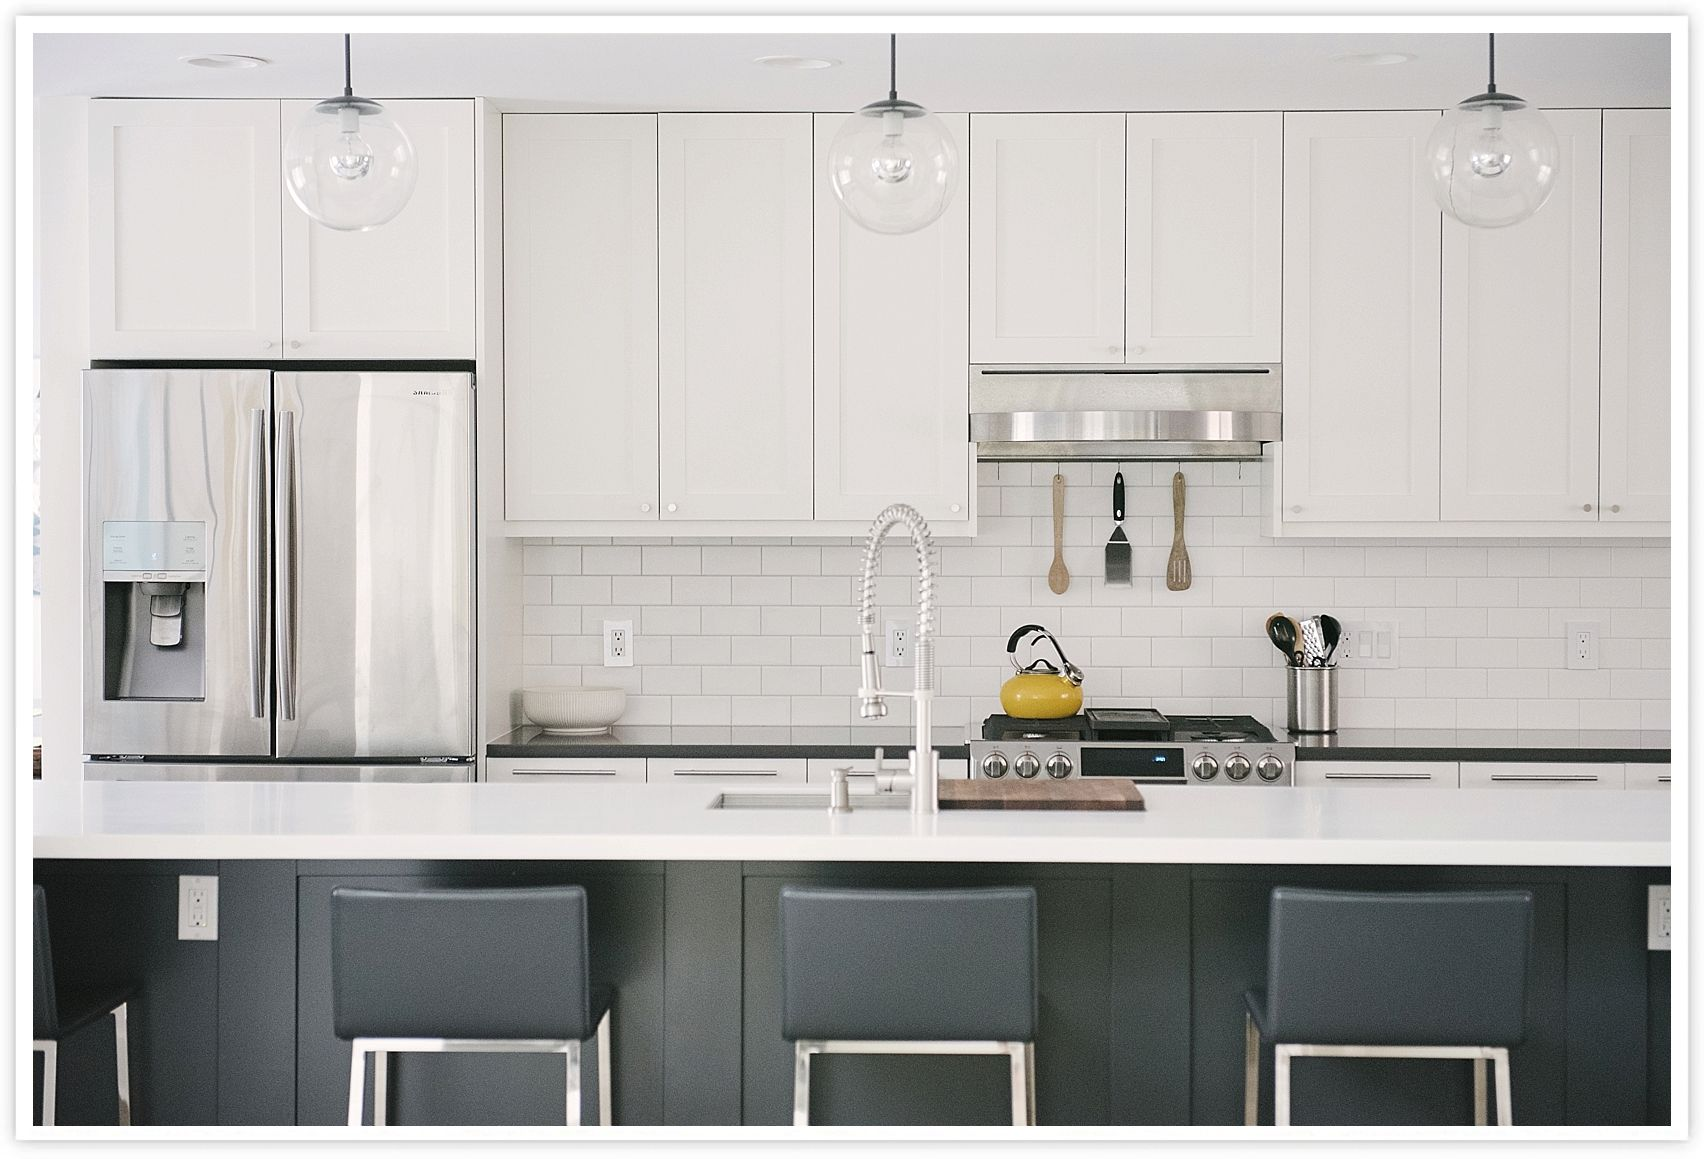 Allie At Home » IKEA + Semihandmade Kitchen Renovation: Before And After